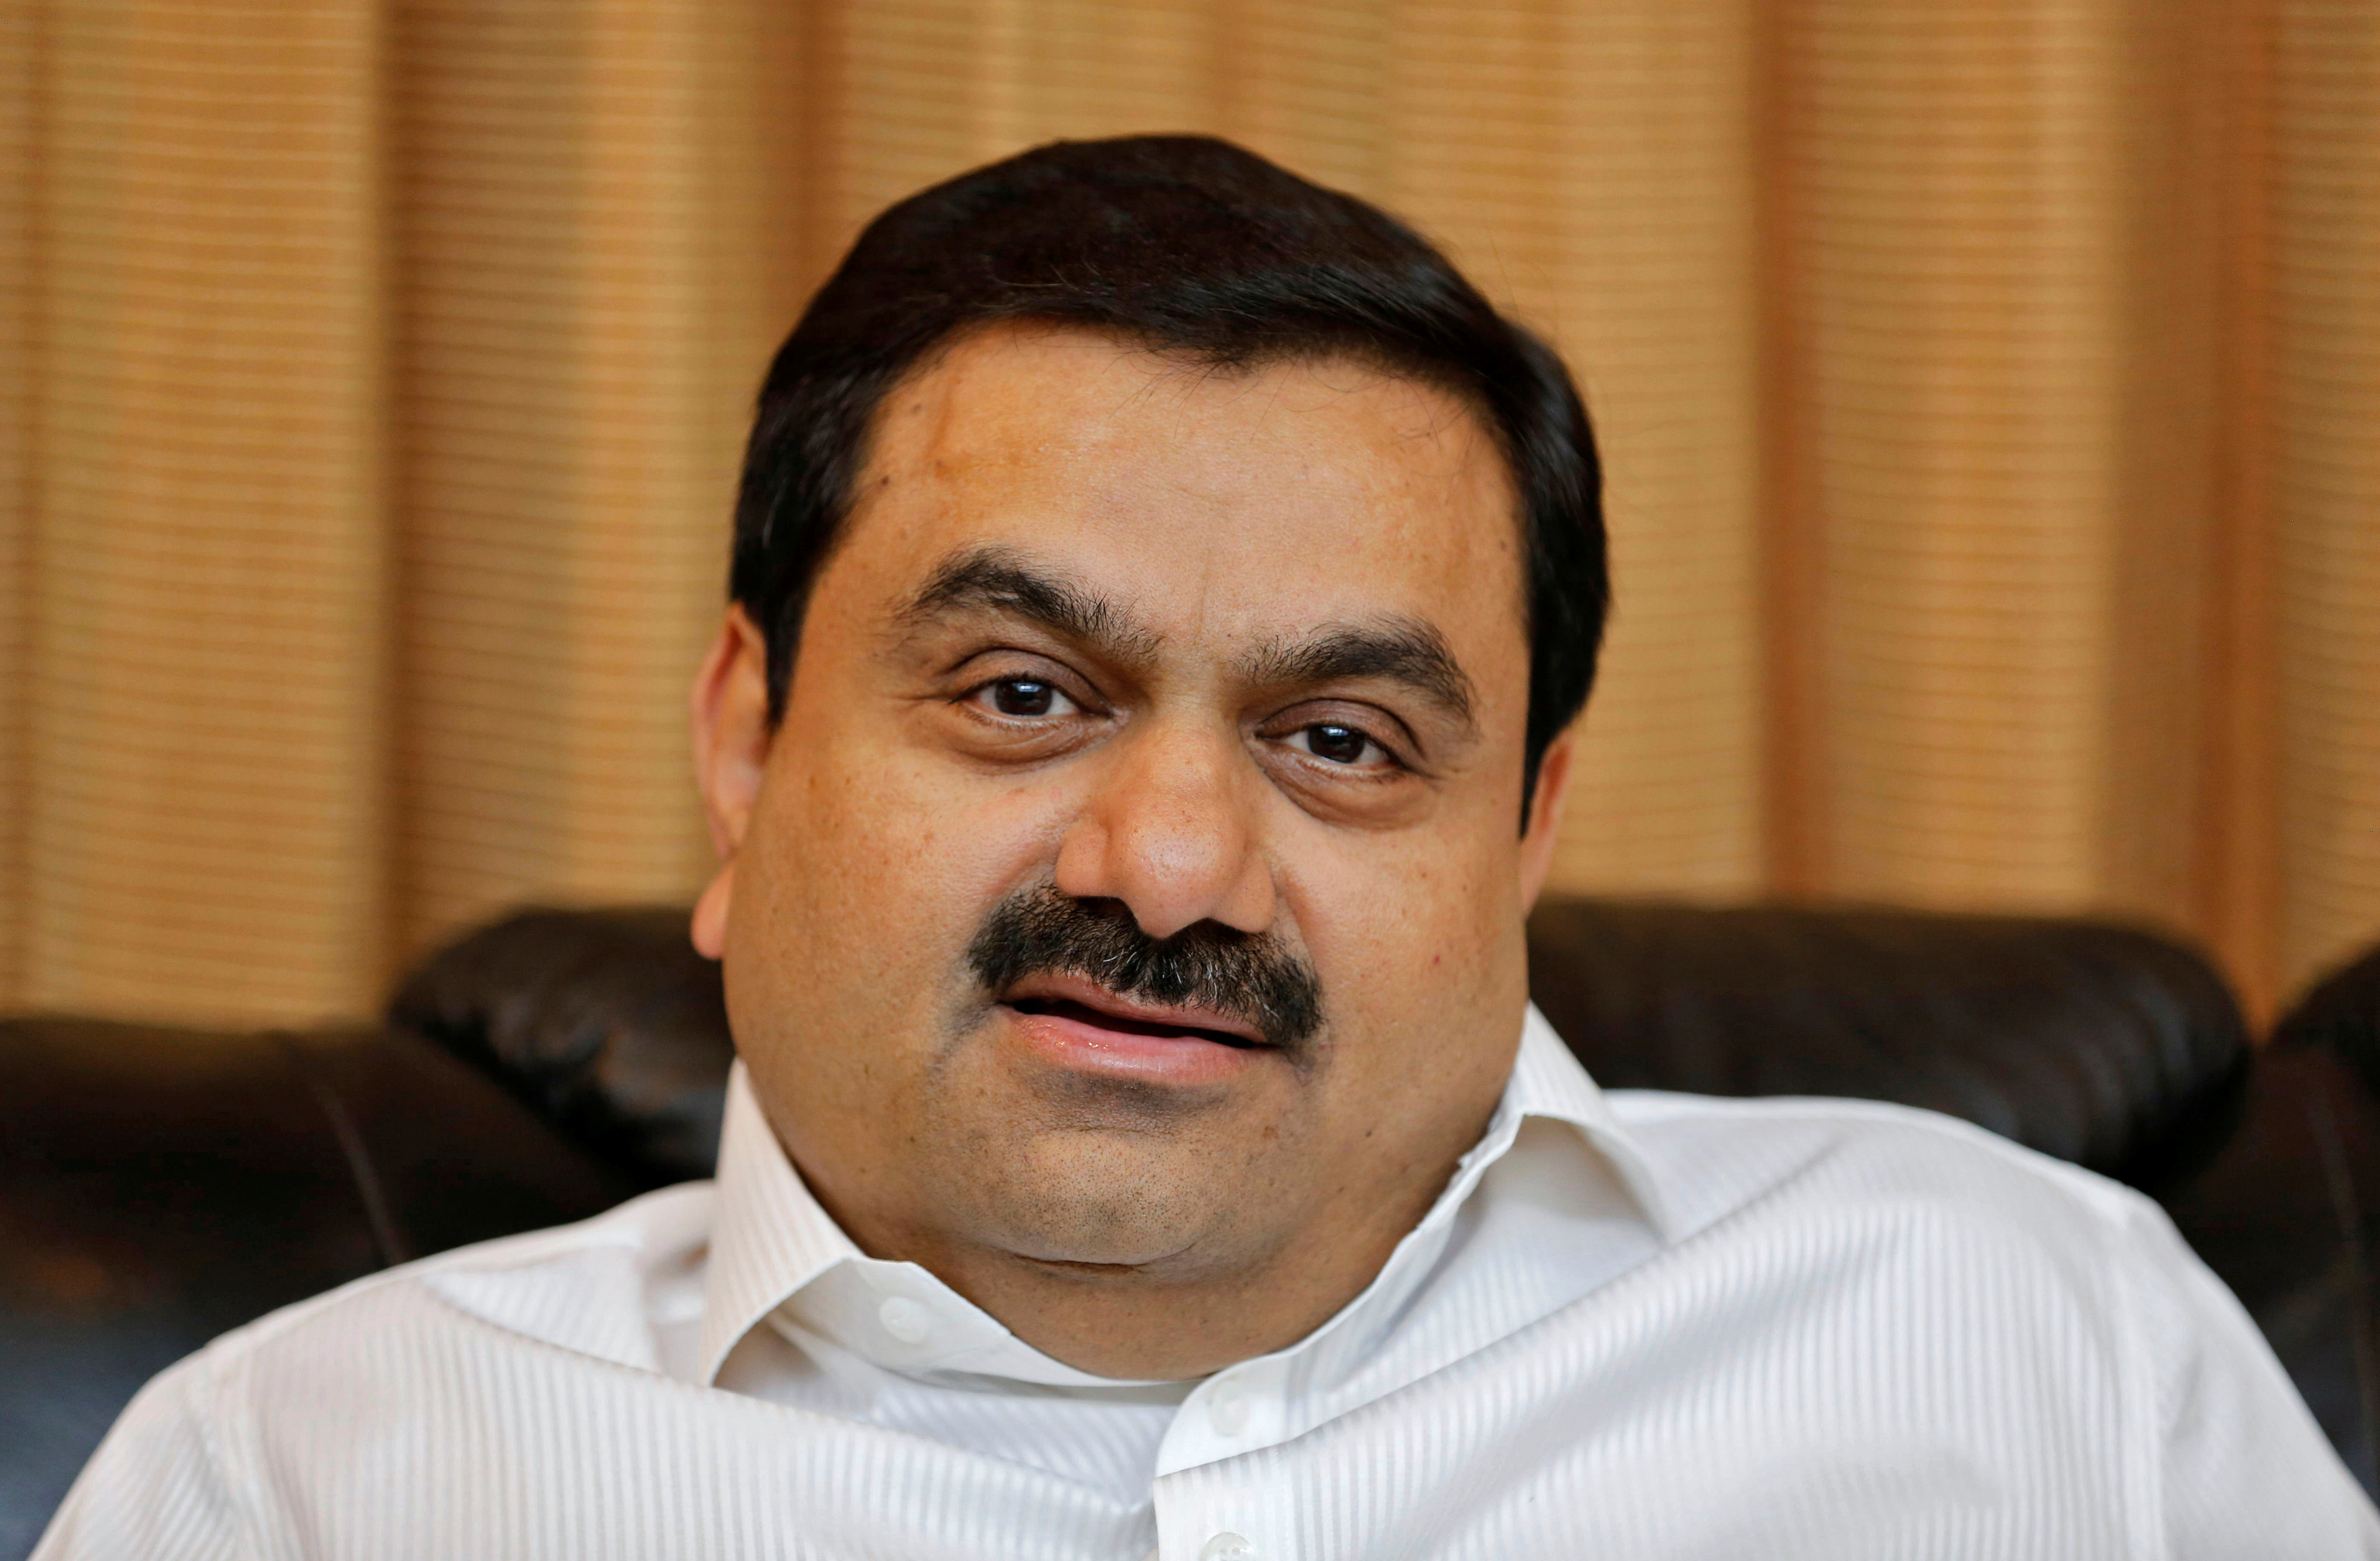 Indian billionaire Gautam Adani speaks during an interview with Reuters at his office in Ahmedabad, India, April 2, 2014. REUTERS/Amit Dave/File Photo